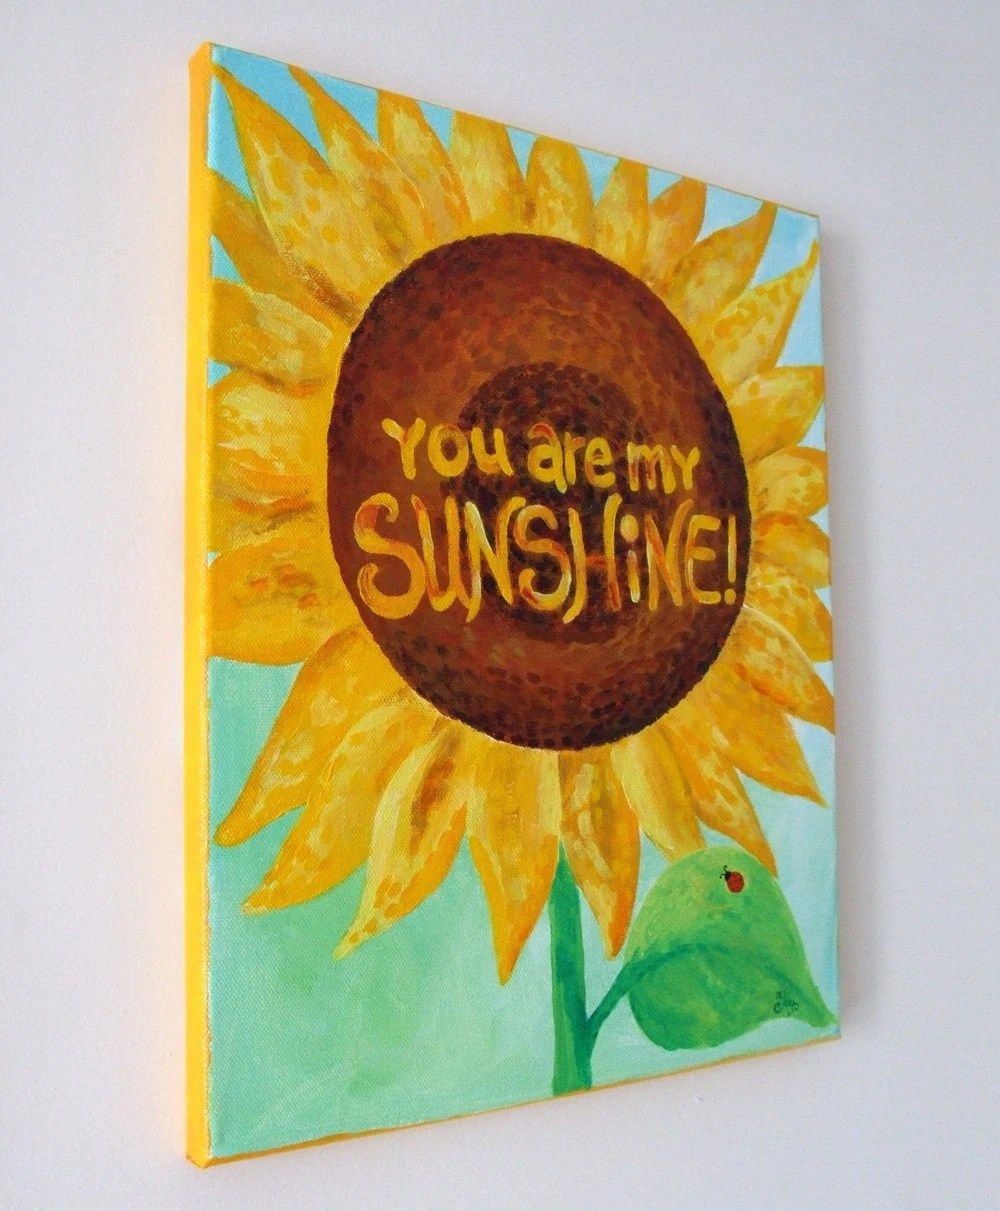 You Are My Sunshine Sunflower - Original 11x14 Acrylic